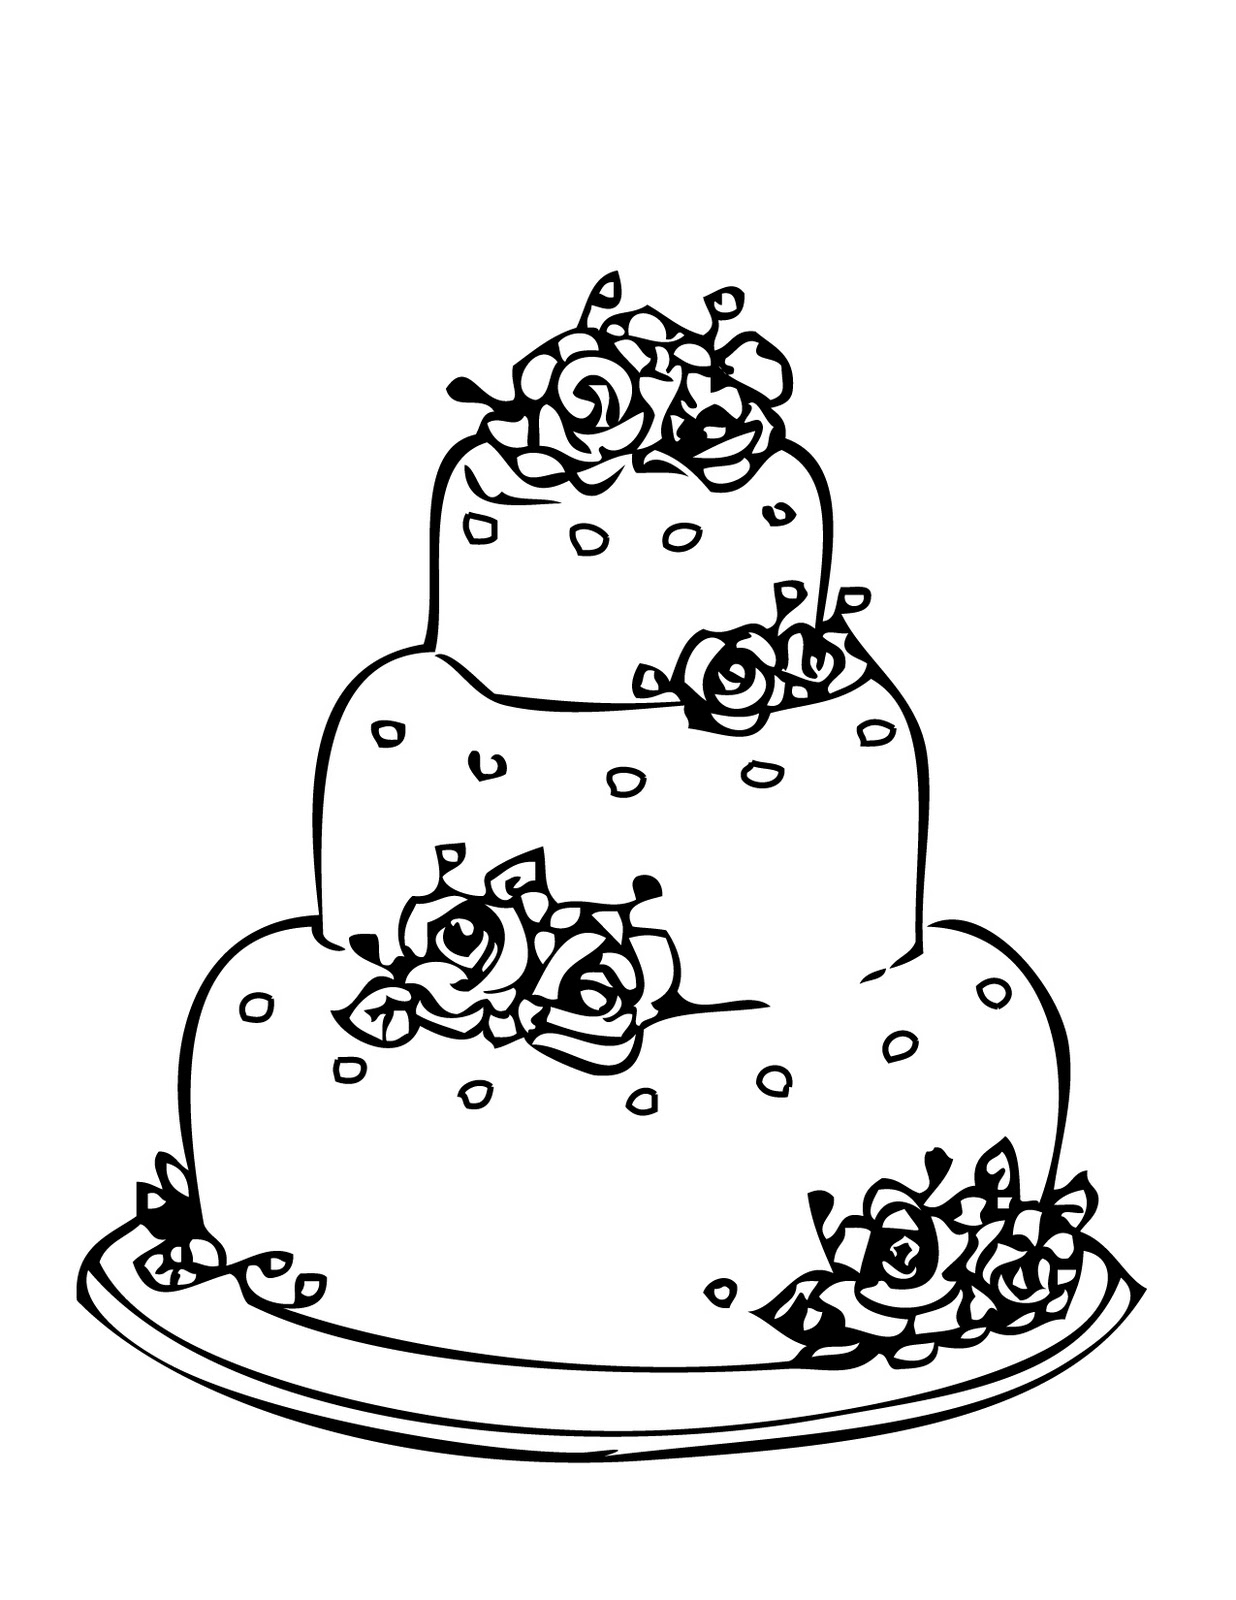 Adult Beauty Coloring Page Cake Images top birthday cake with roses printable wedding coloring pages images